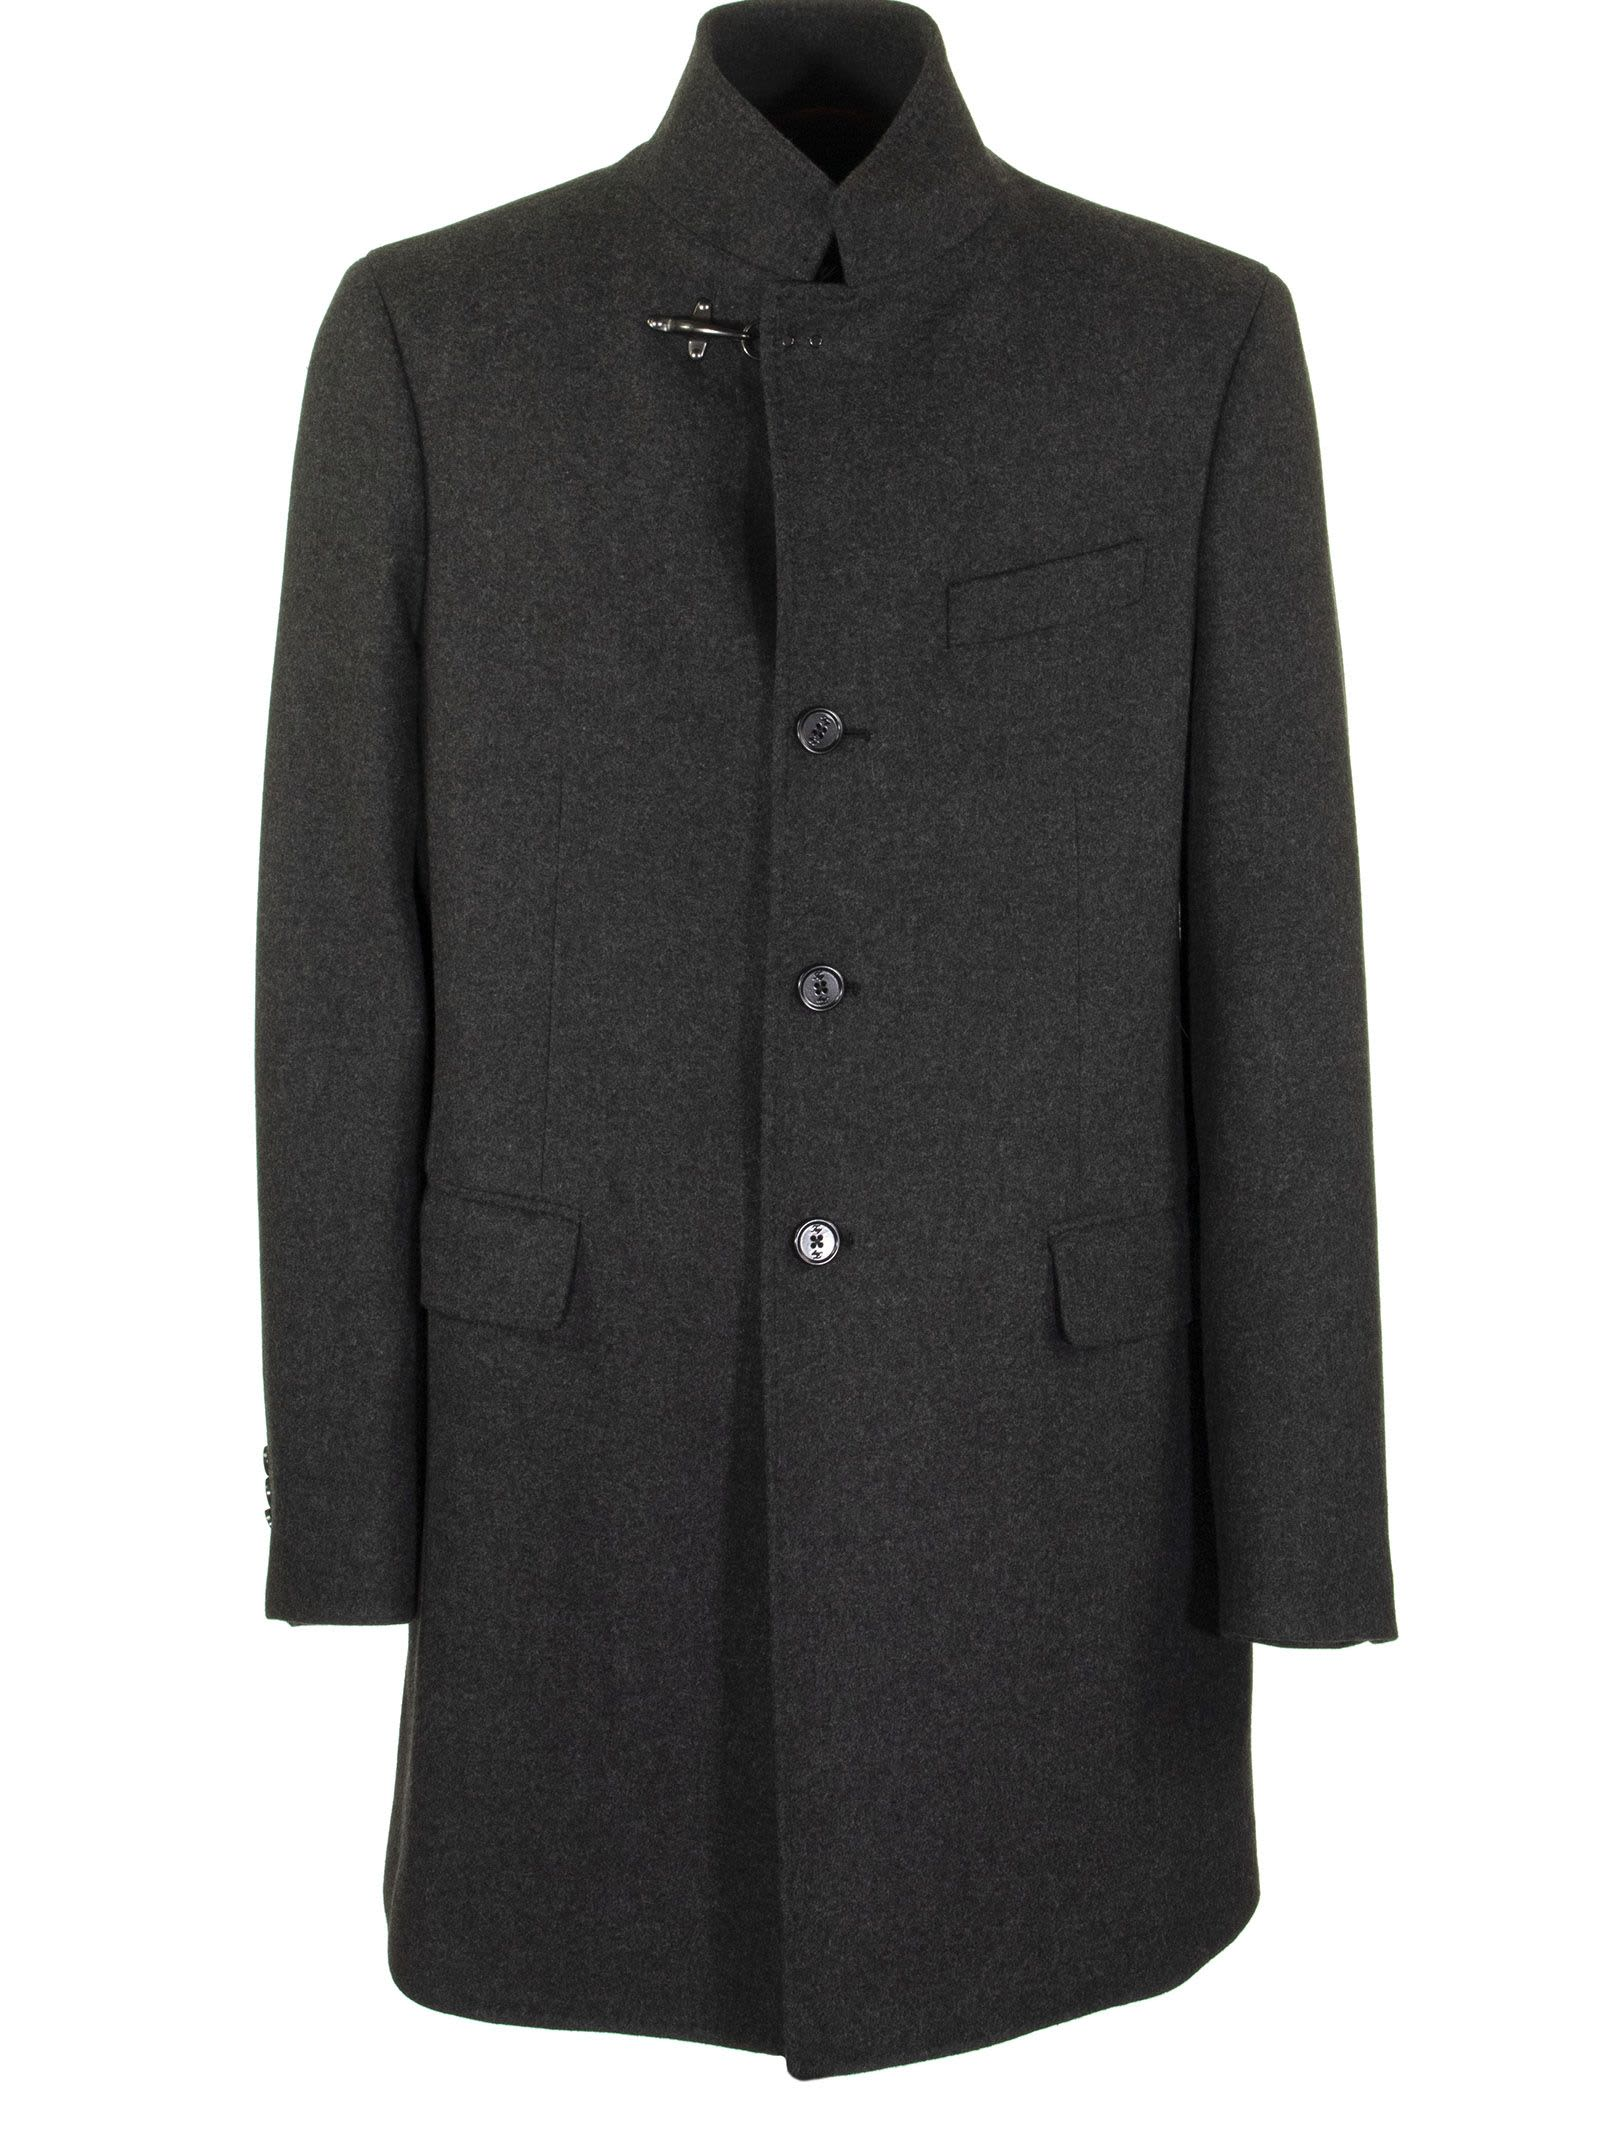 Unlined coat in wool blend cloth. High collar, upper pocket and pockets with flap. A coat with timeless elegance with tailored details and personalized buttons, enhanced by the iconic closure hook at the neck. Composition: 75% wool, 25% polyamide.